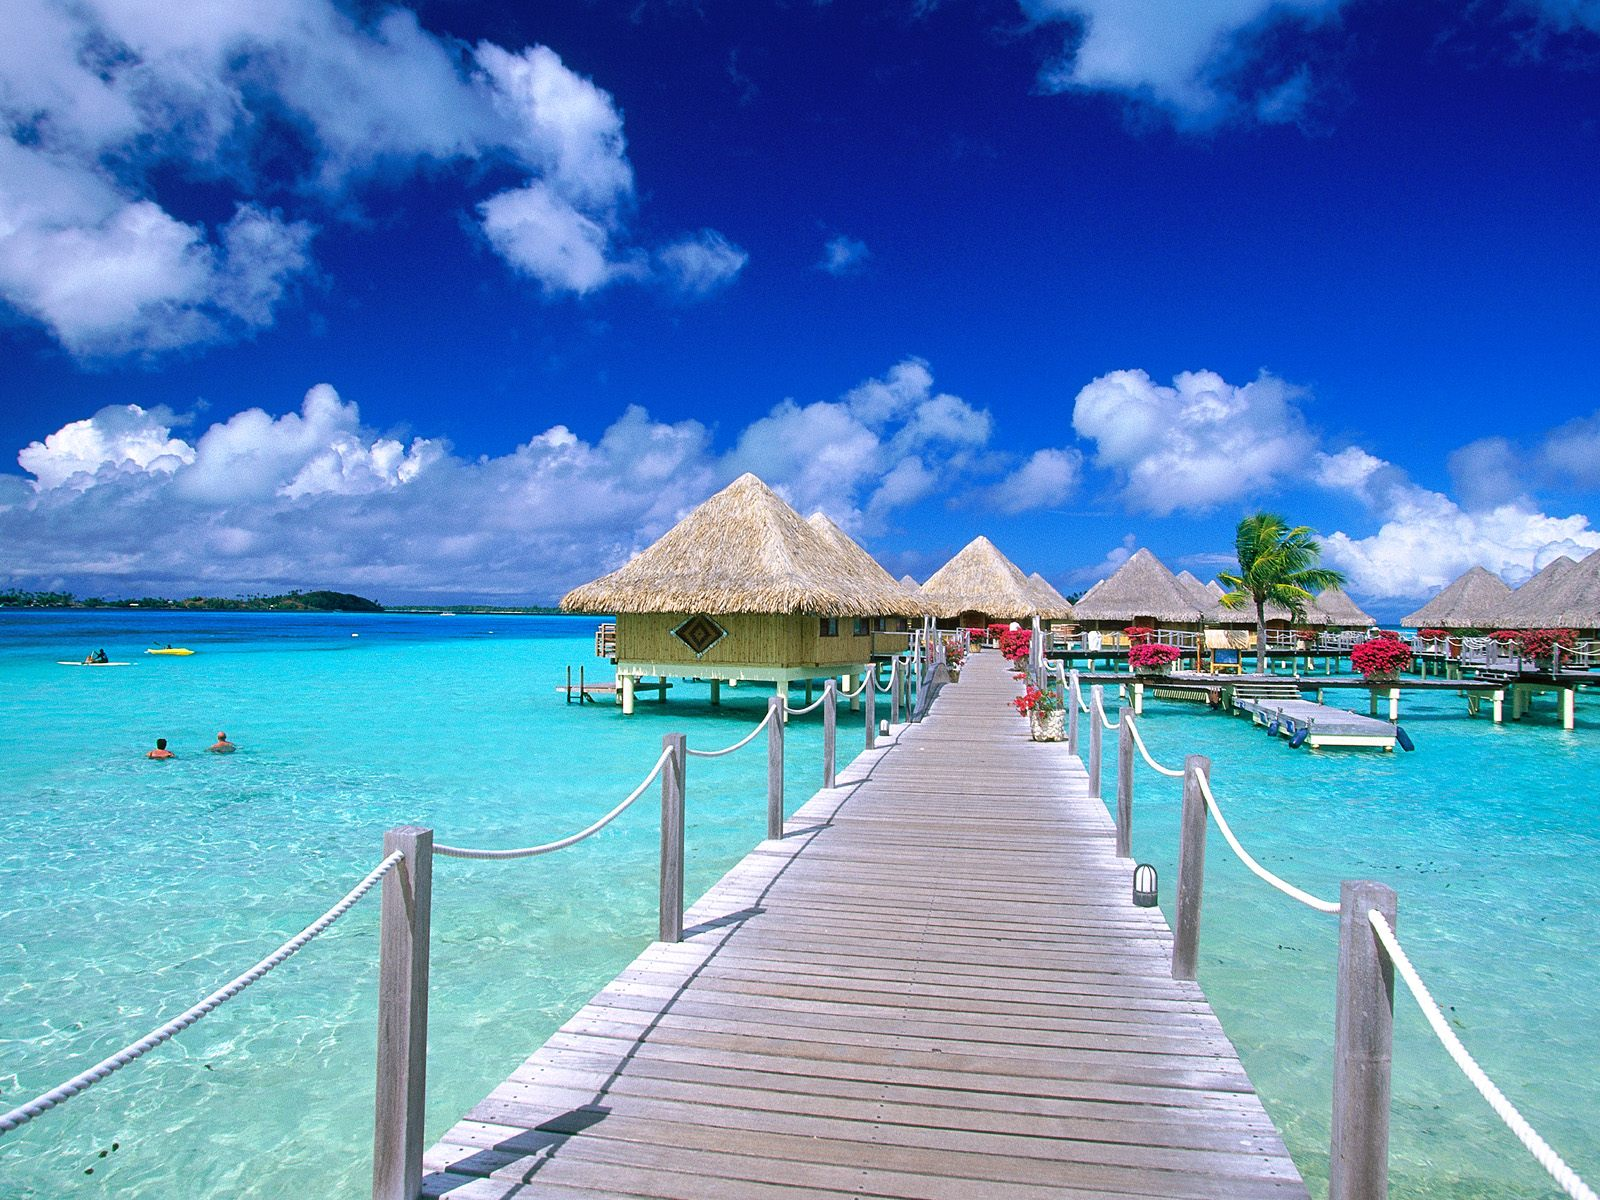 Romantic Pictures Of Tropical Beaches: Free Tropical Beach Backgrounds